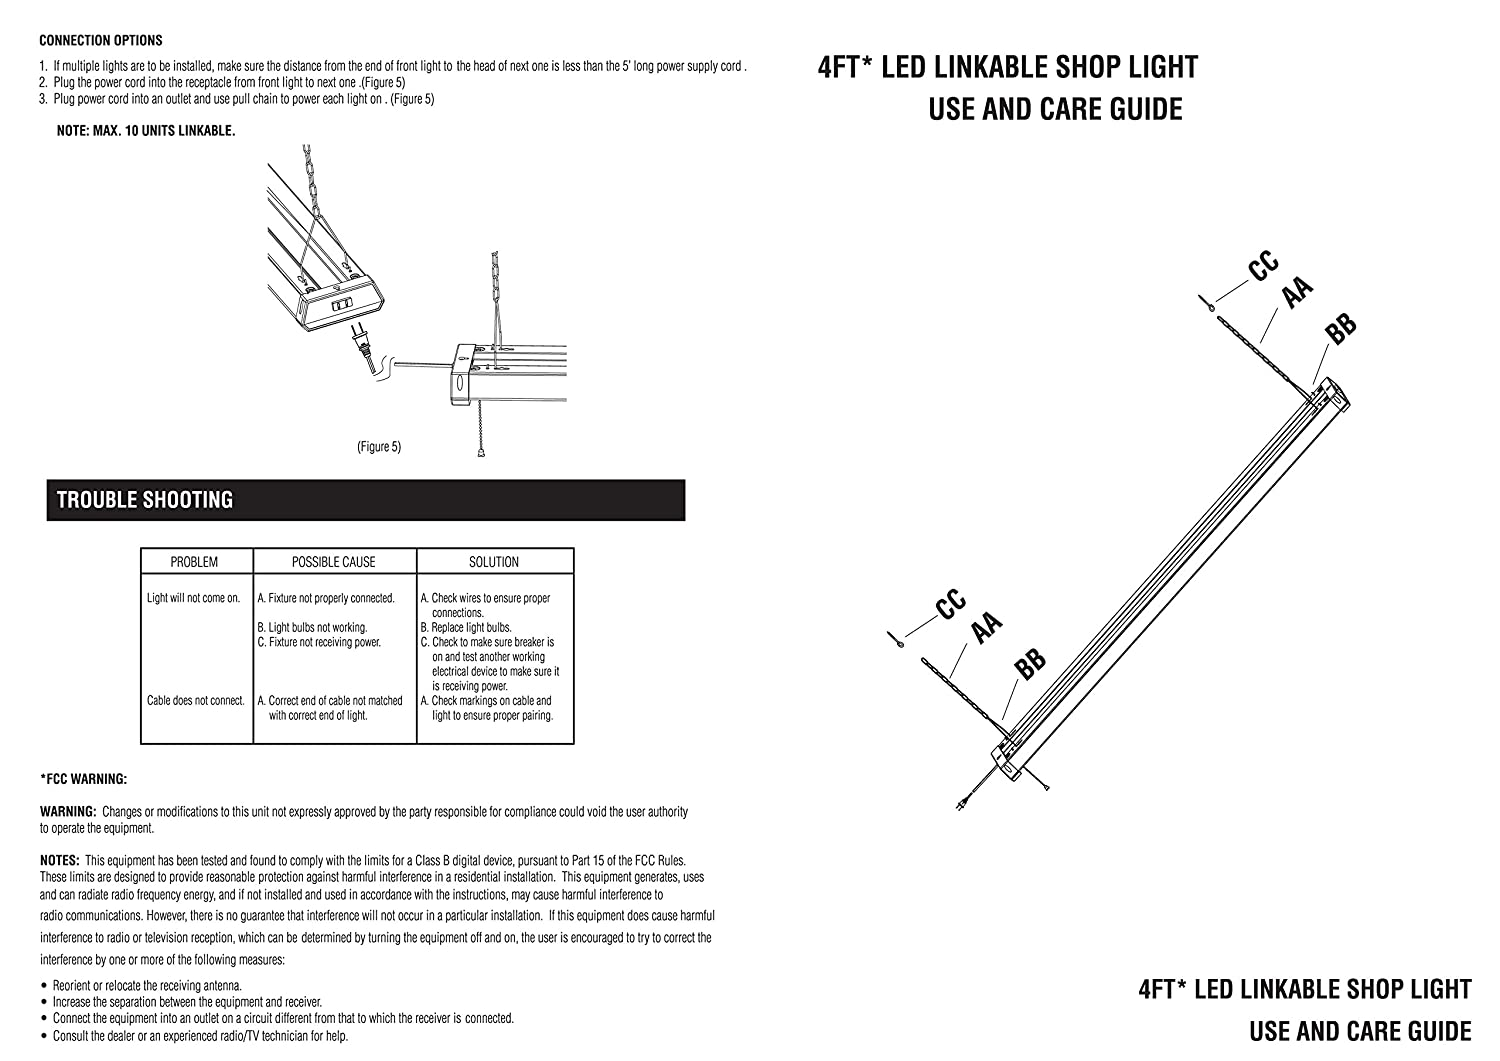 Linkable Led Shop Light 4ft 42w 5000k 4800lm Super Bright, Cetlus 4Ft LED  Kitchen Light 4ft Led Shop Light Wiring Diagram